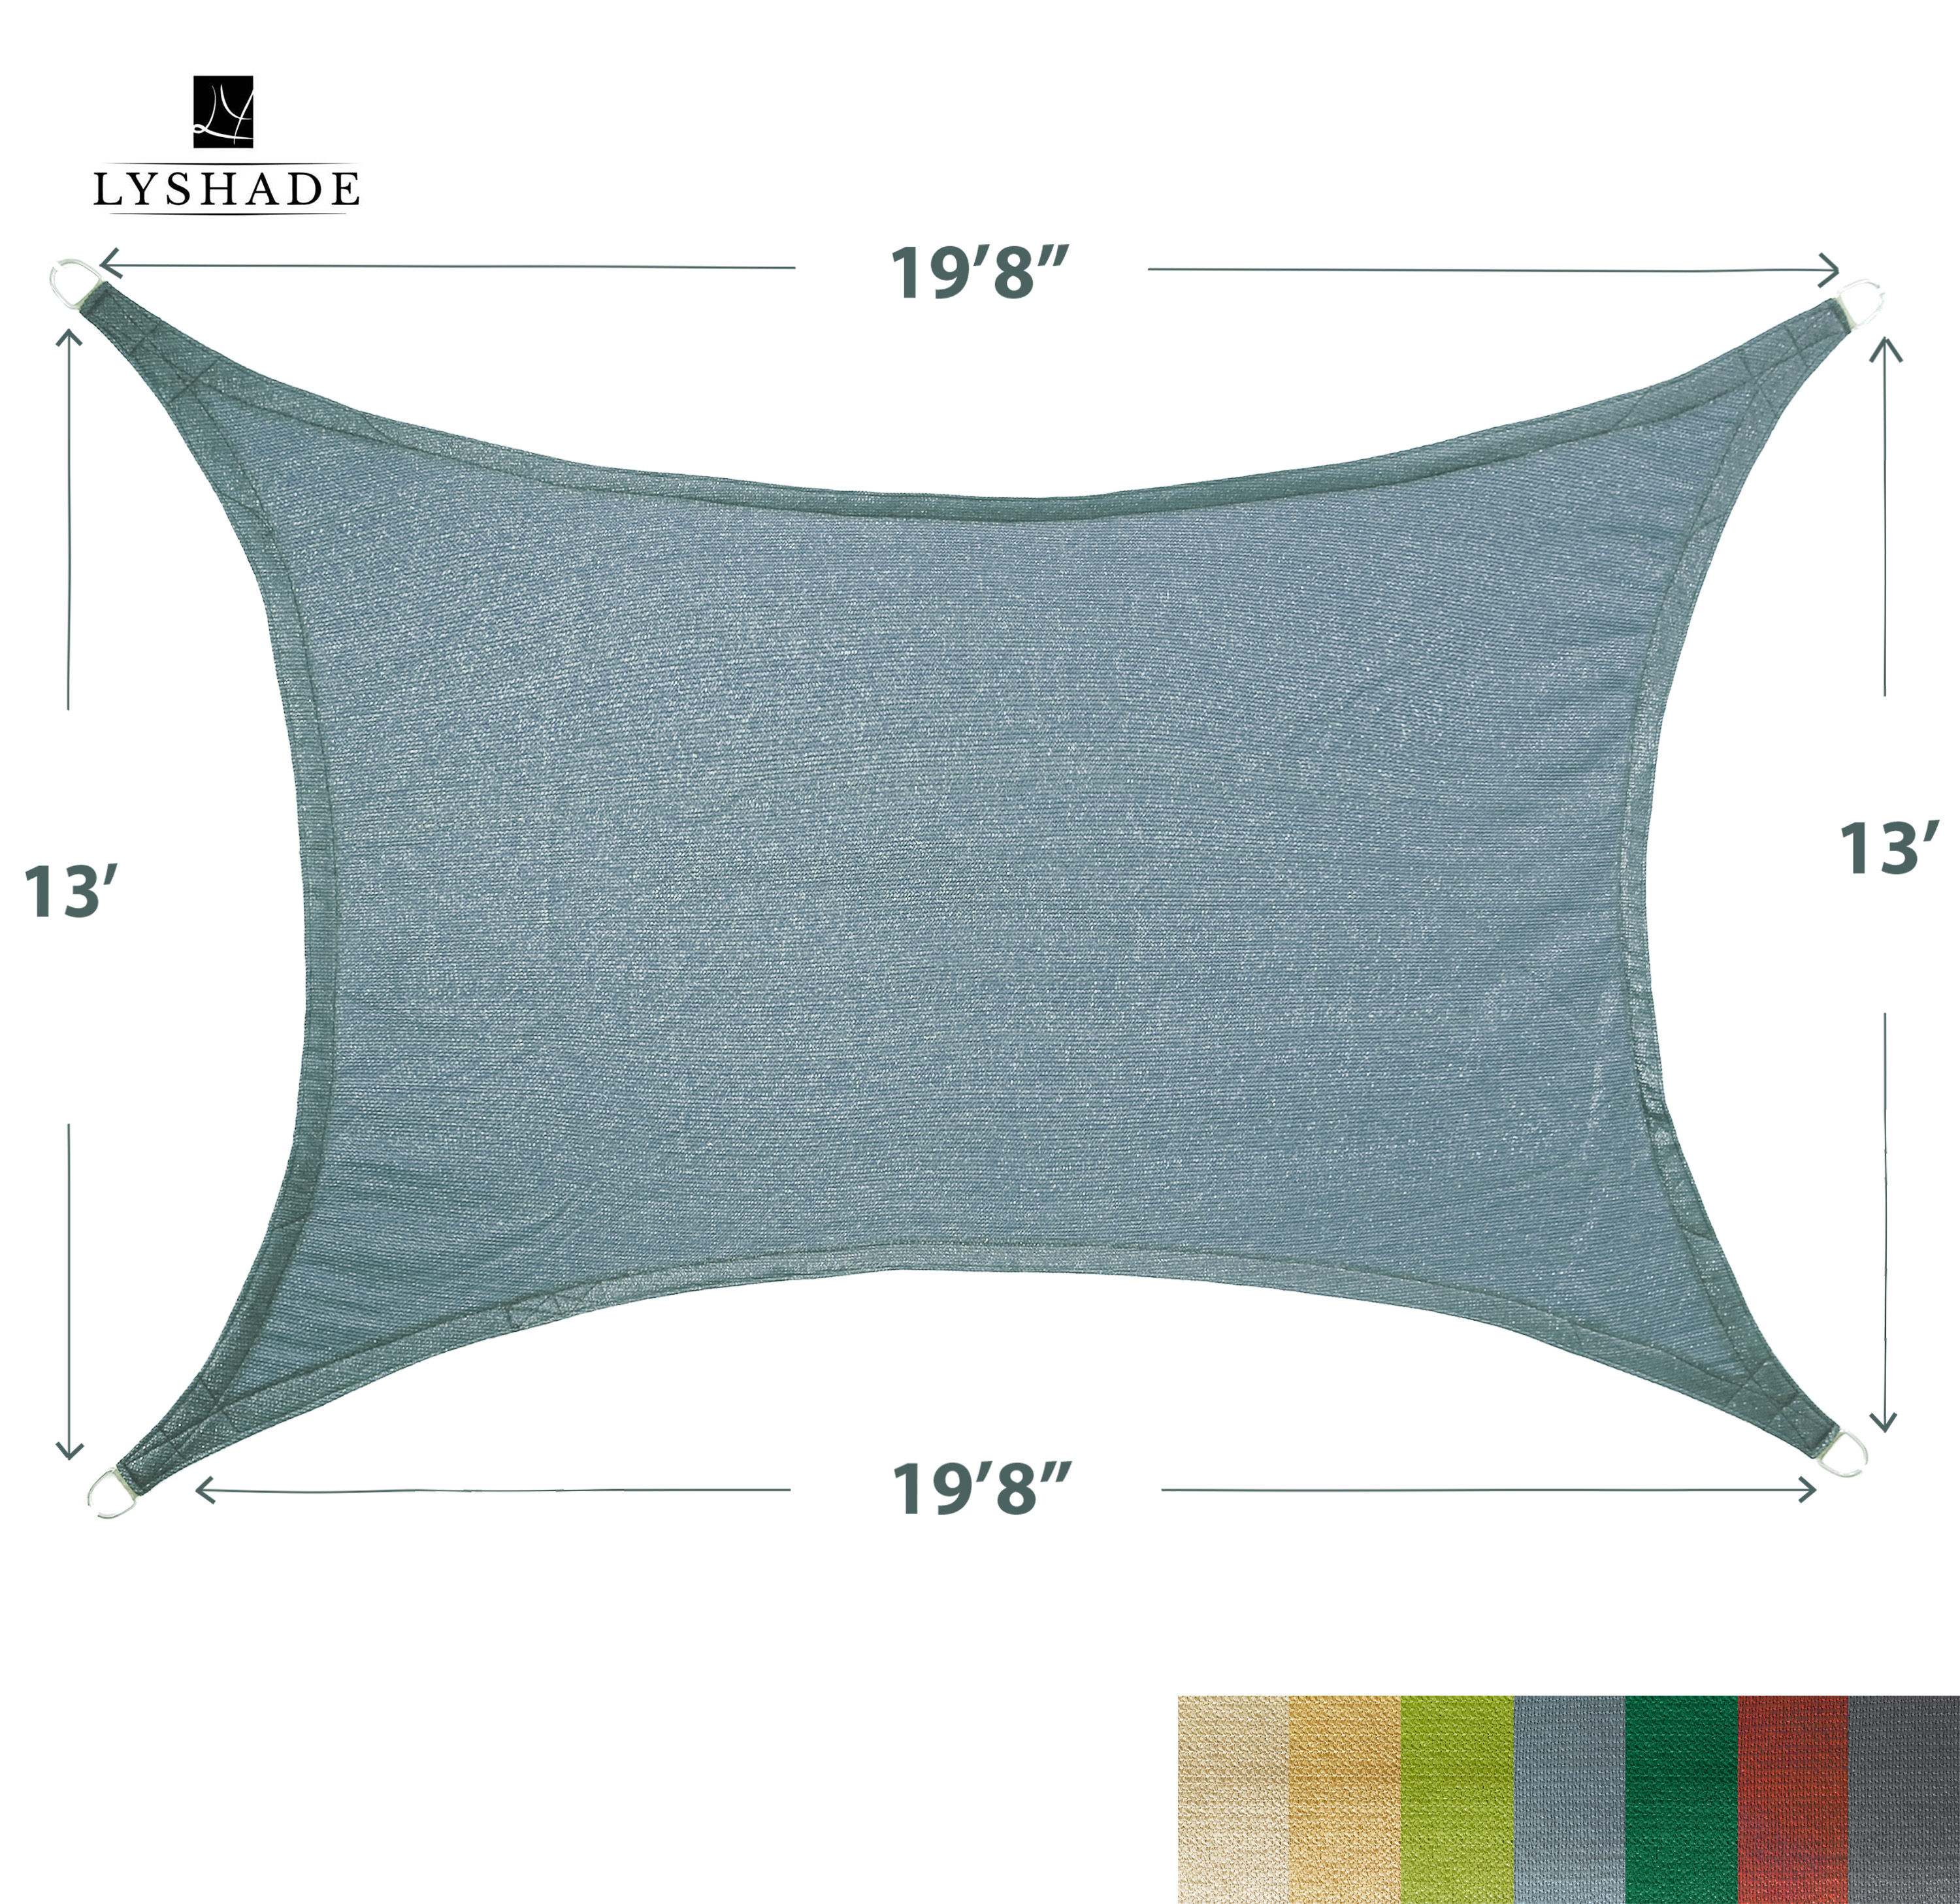 """LyShade 19'8"""" x 13' Rectangle Sun Shade Sail Canopy - UV Block for Patio and Outdoor"""